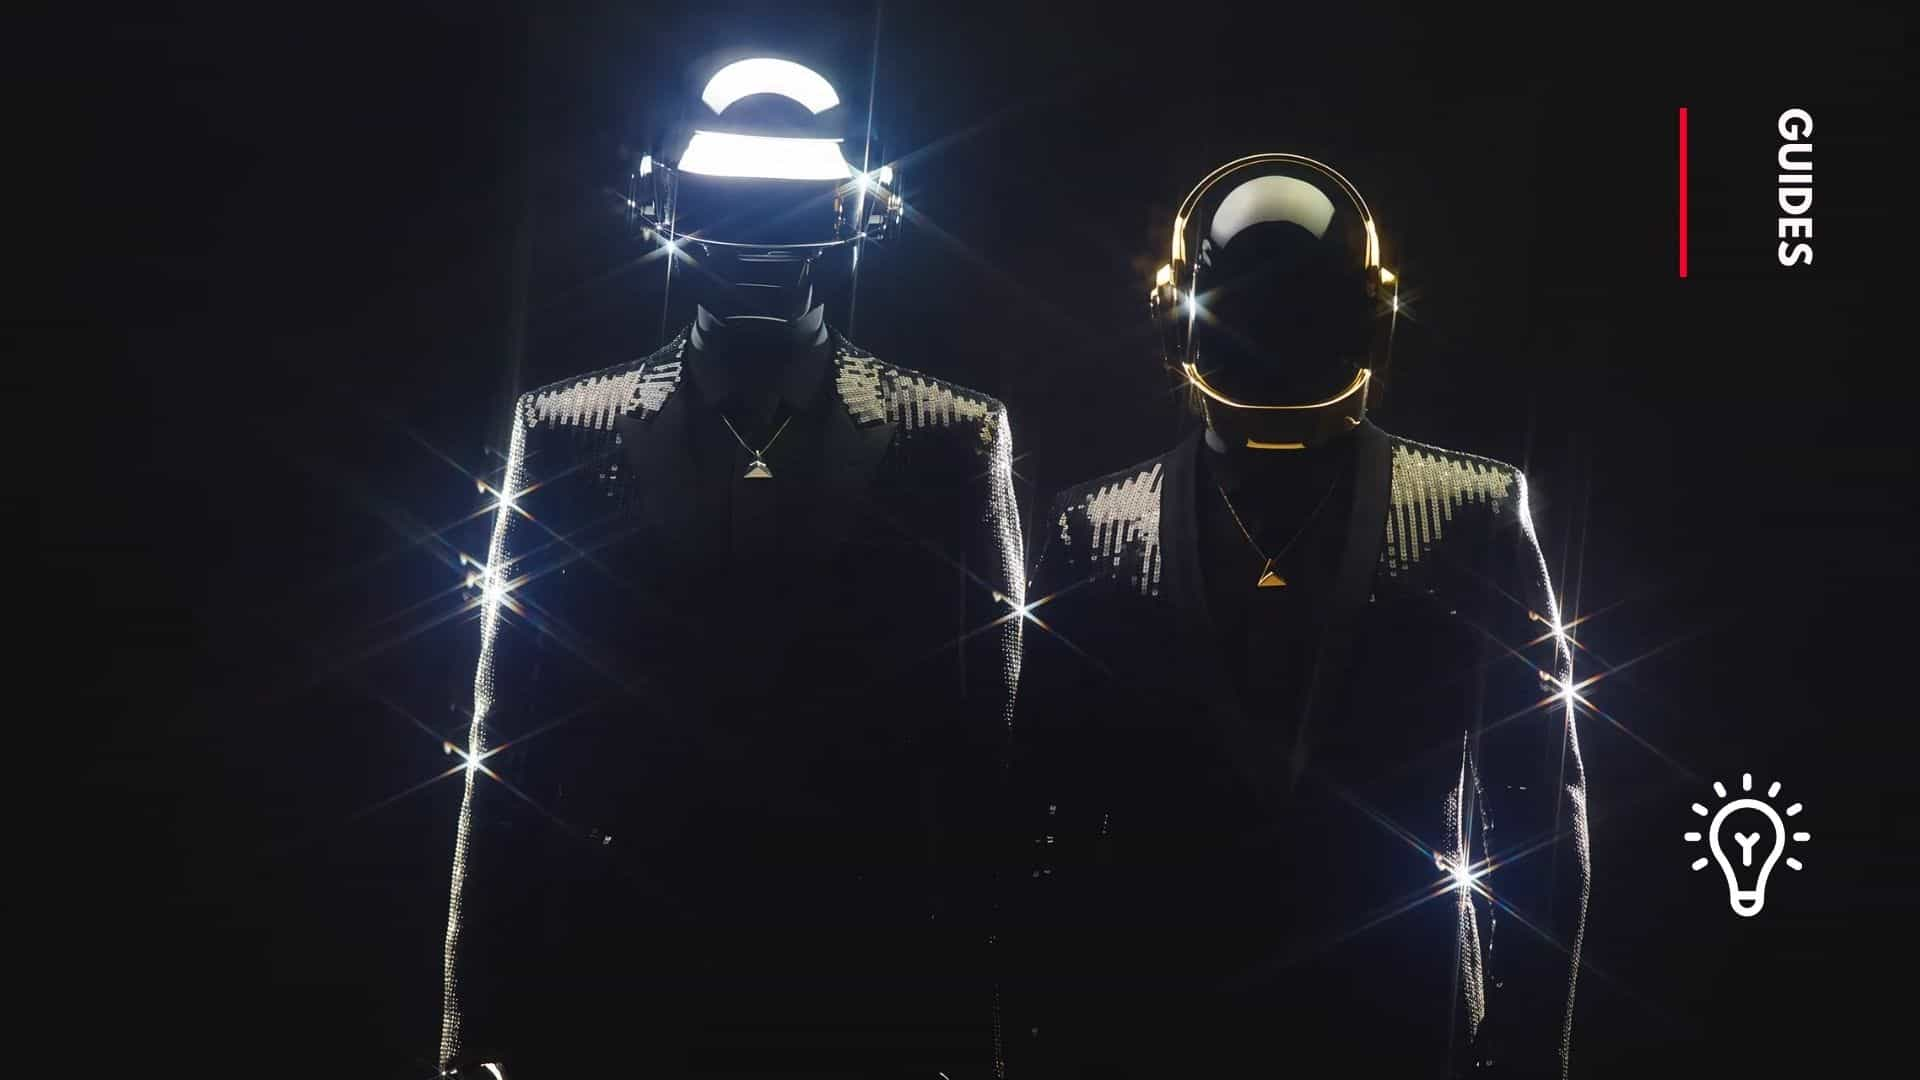 how to make music like Daft Punk